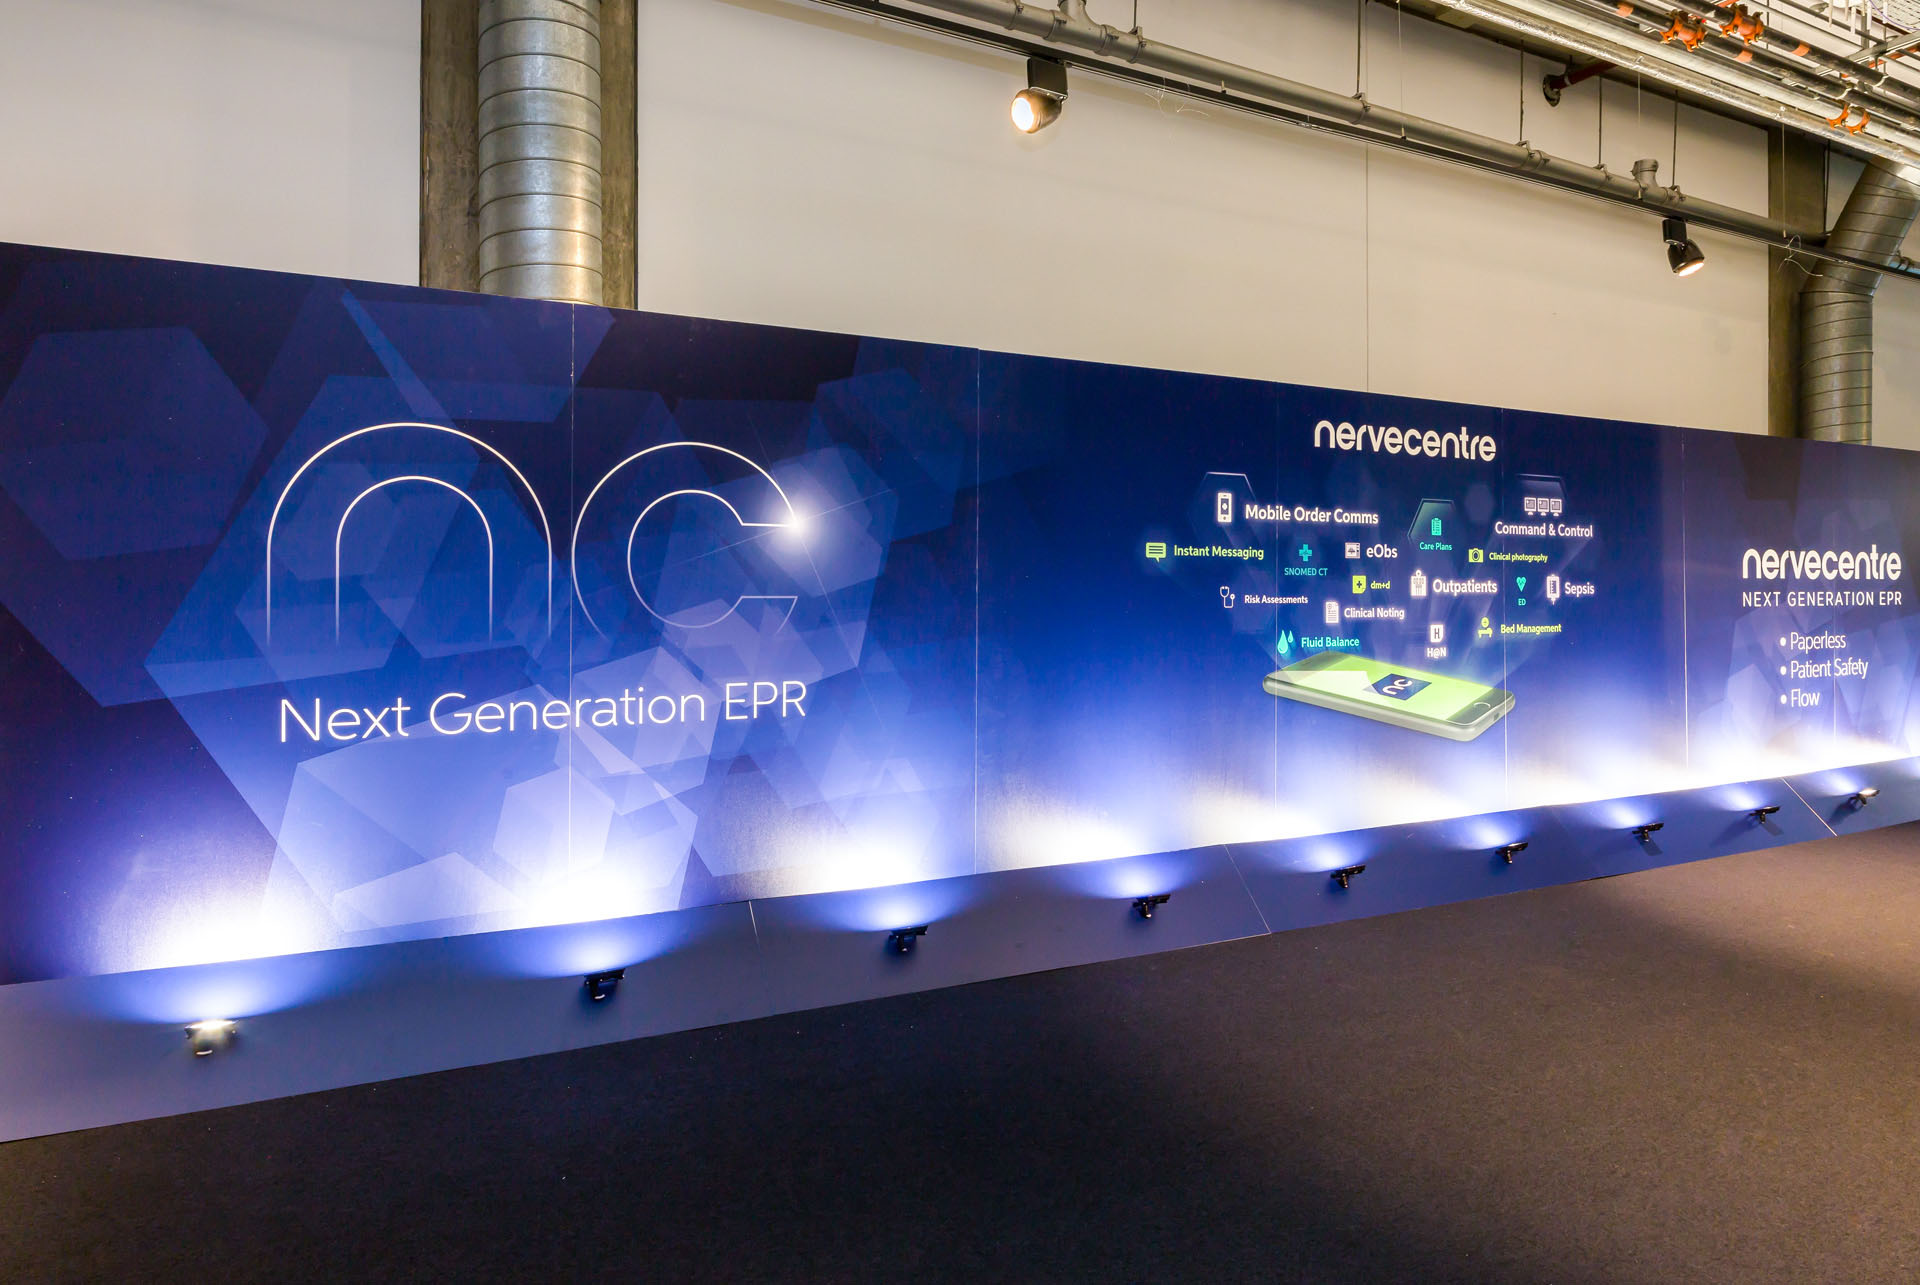 Nervecentre EPR launch exhibition stand graphics by Ouno Creative, Farnborough.